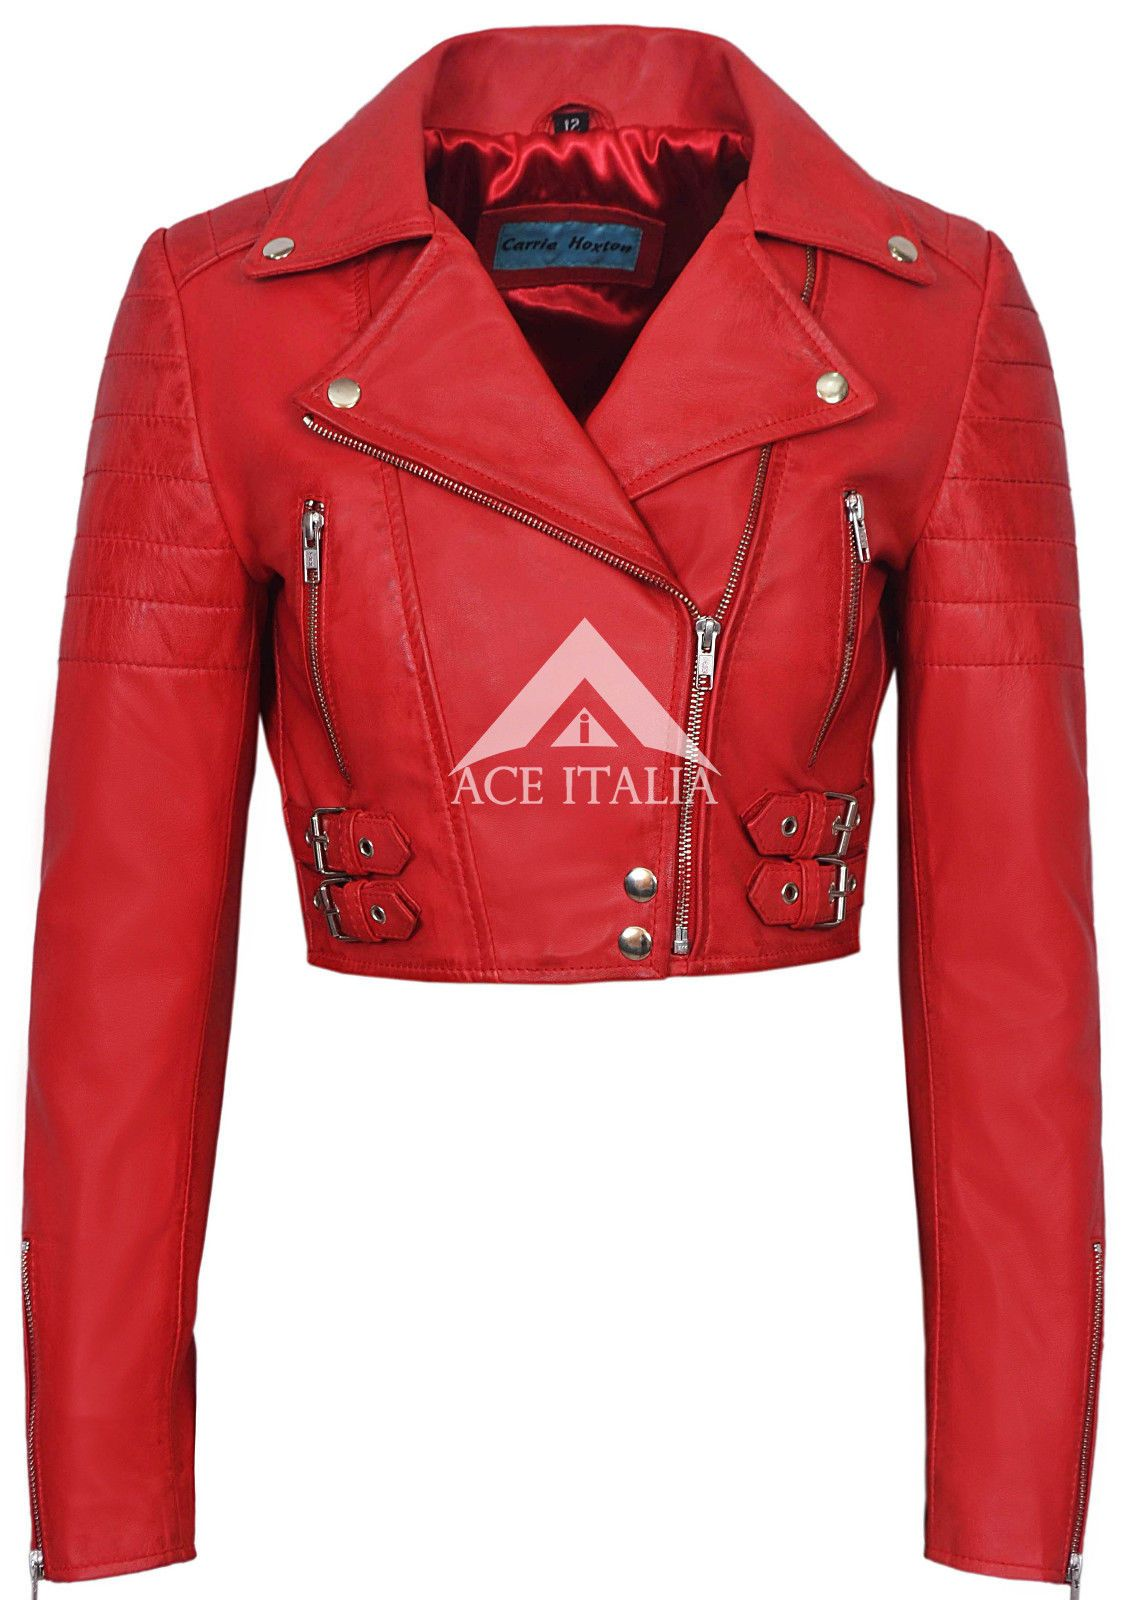 Ladies Leather Jacket Red Cropped Fashion Fitted Red Biker Style Napa Jacket Leather Jackets Women Leather Jacket Red Jacket Leather [ 1600 x 1131 Pixel ]